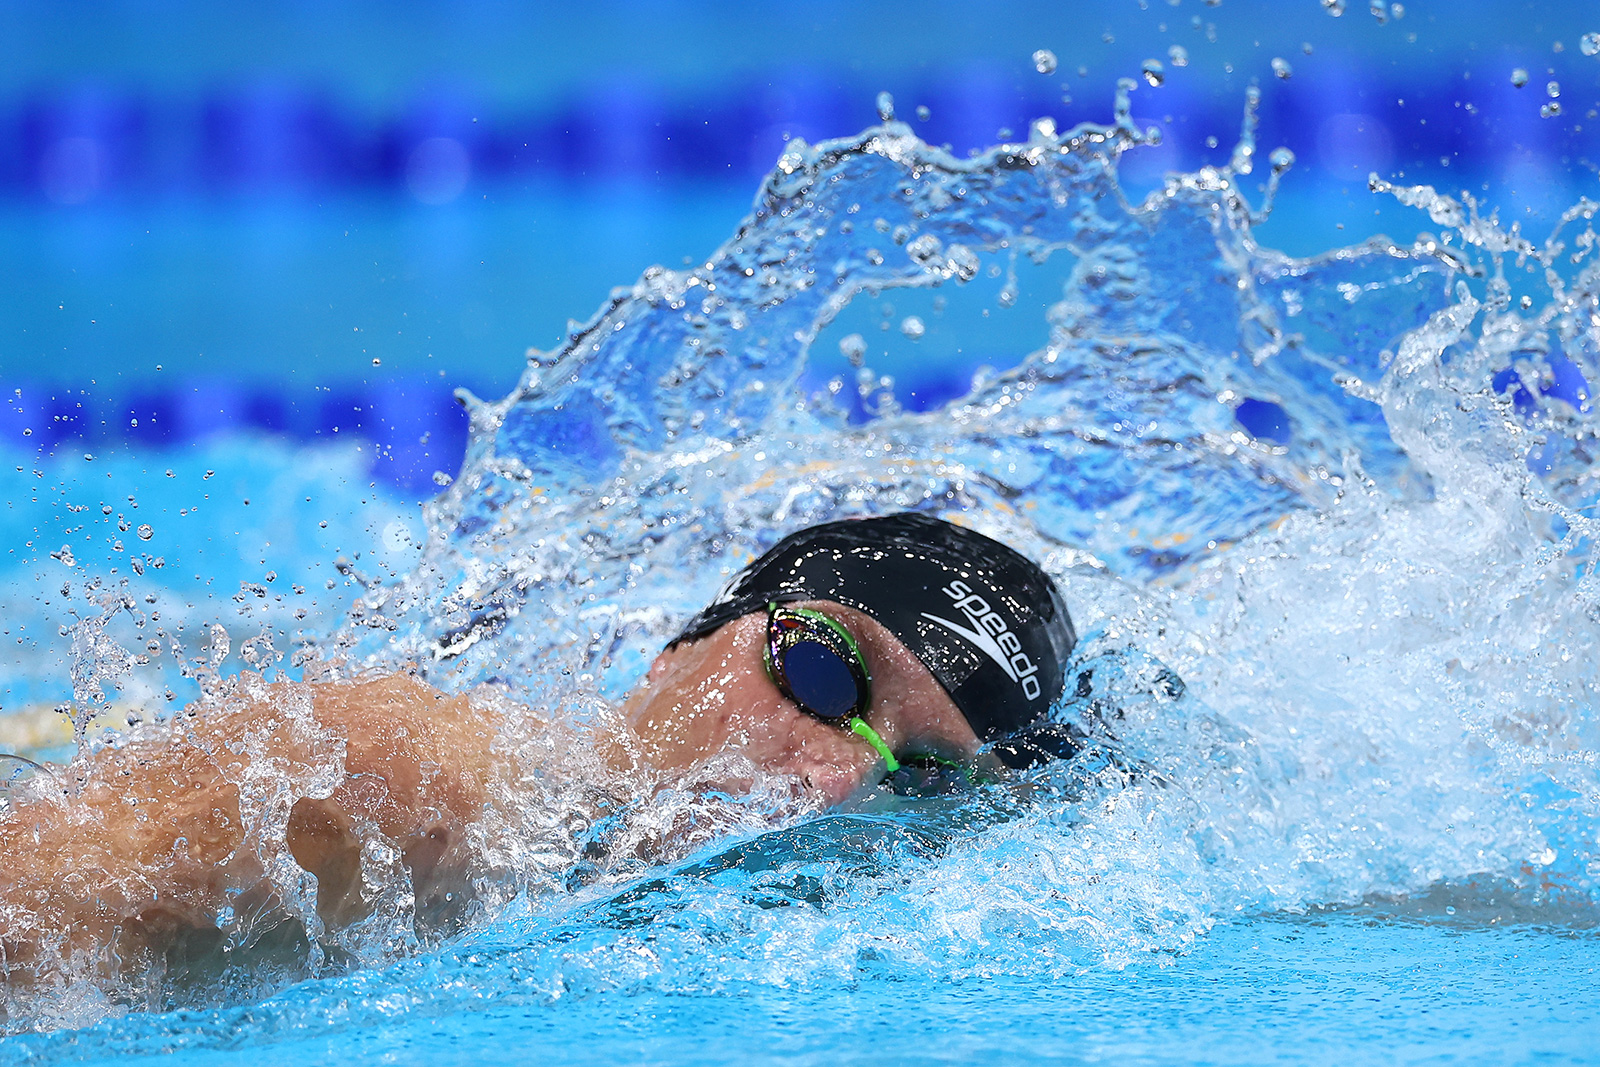 Bobby Finke of Team USA competes in the 1500 meter freestyle final on Sunday.